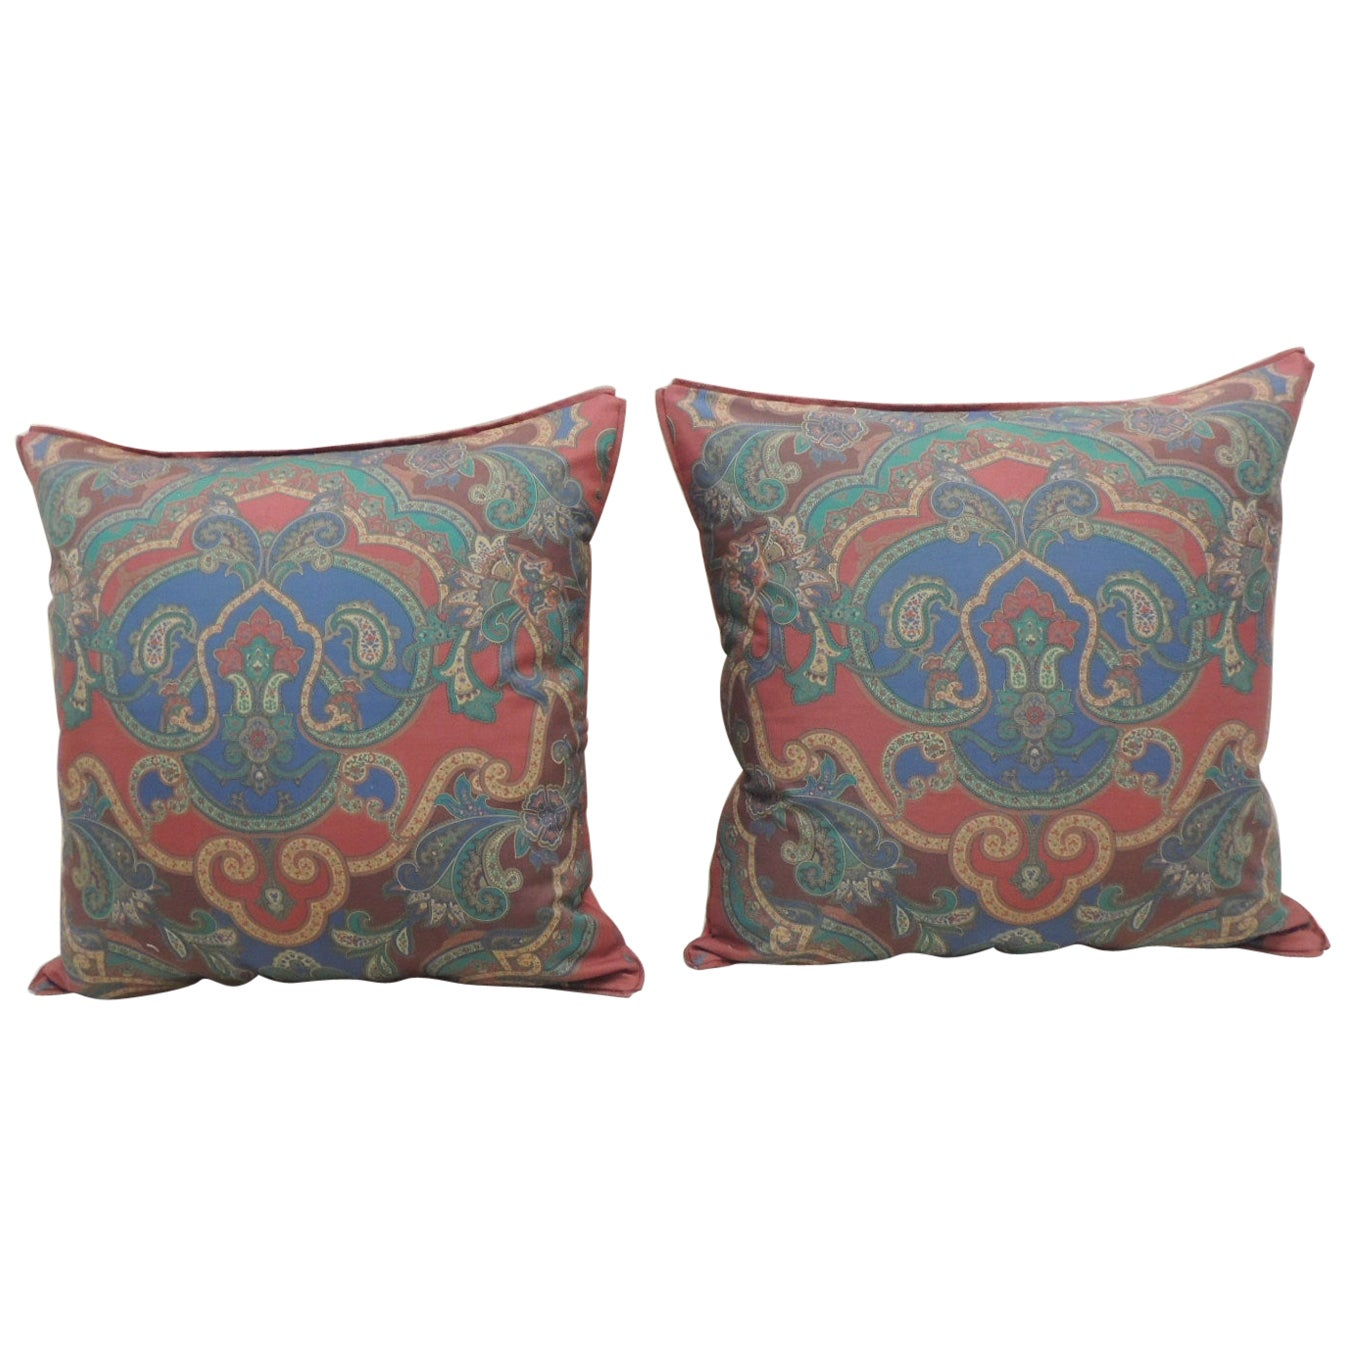 Pair of Modern Cotton Printed Paisleys Square Decorative Pillows